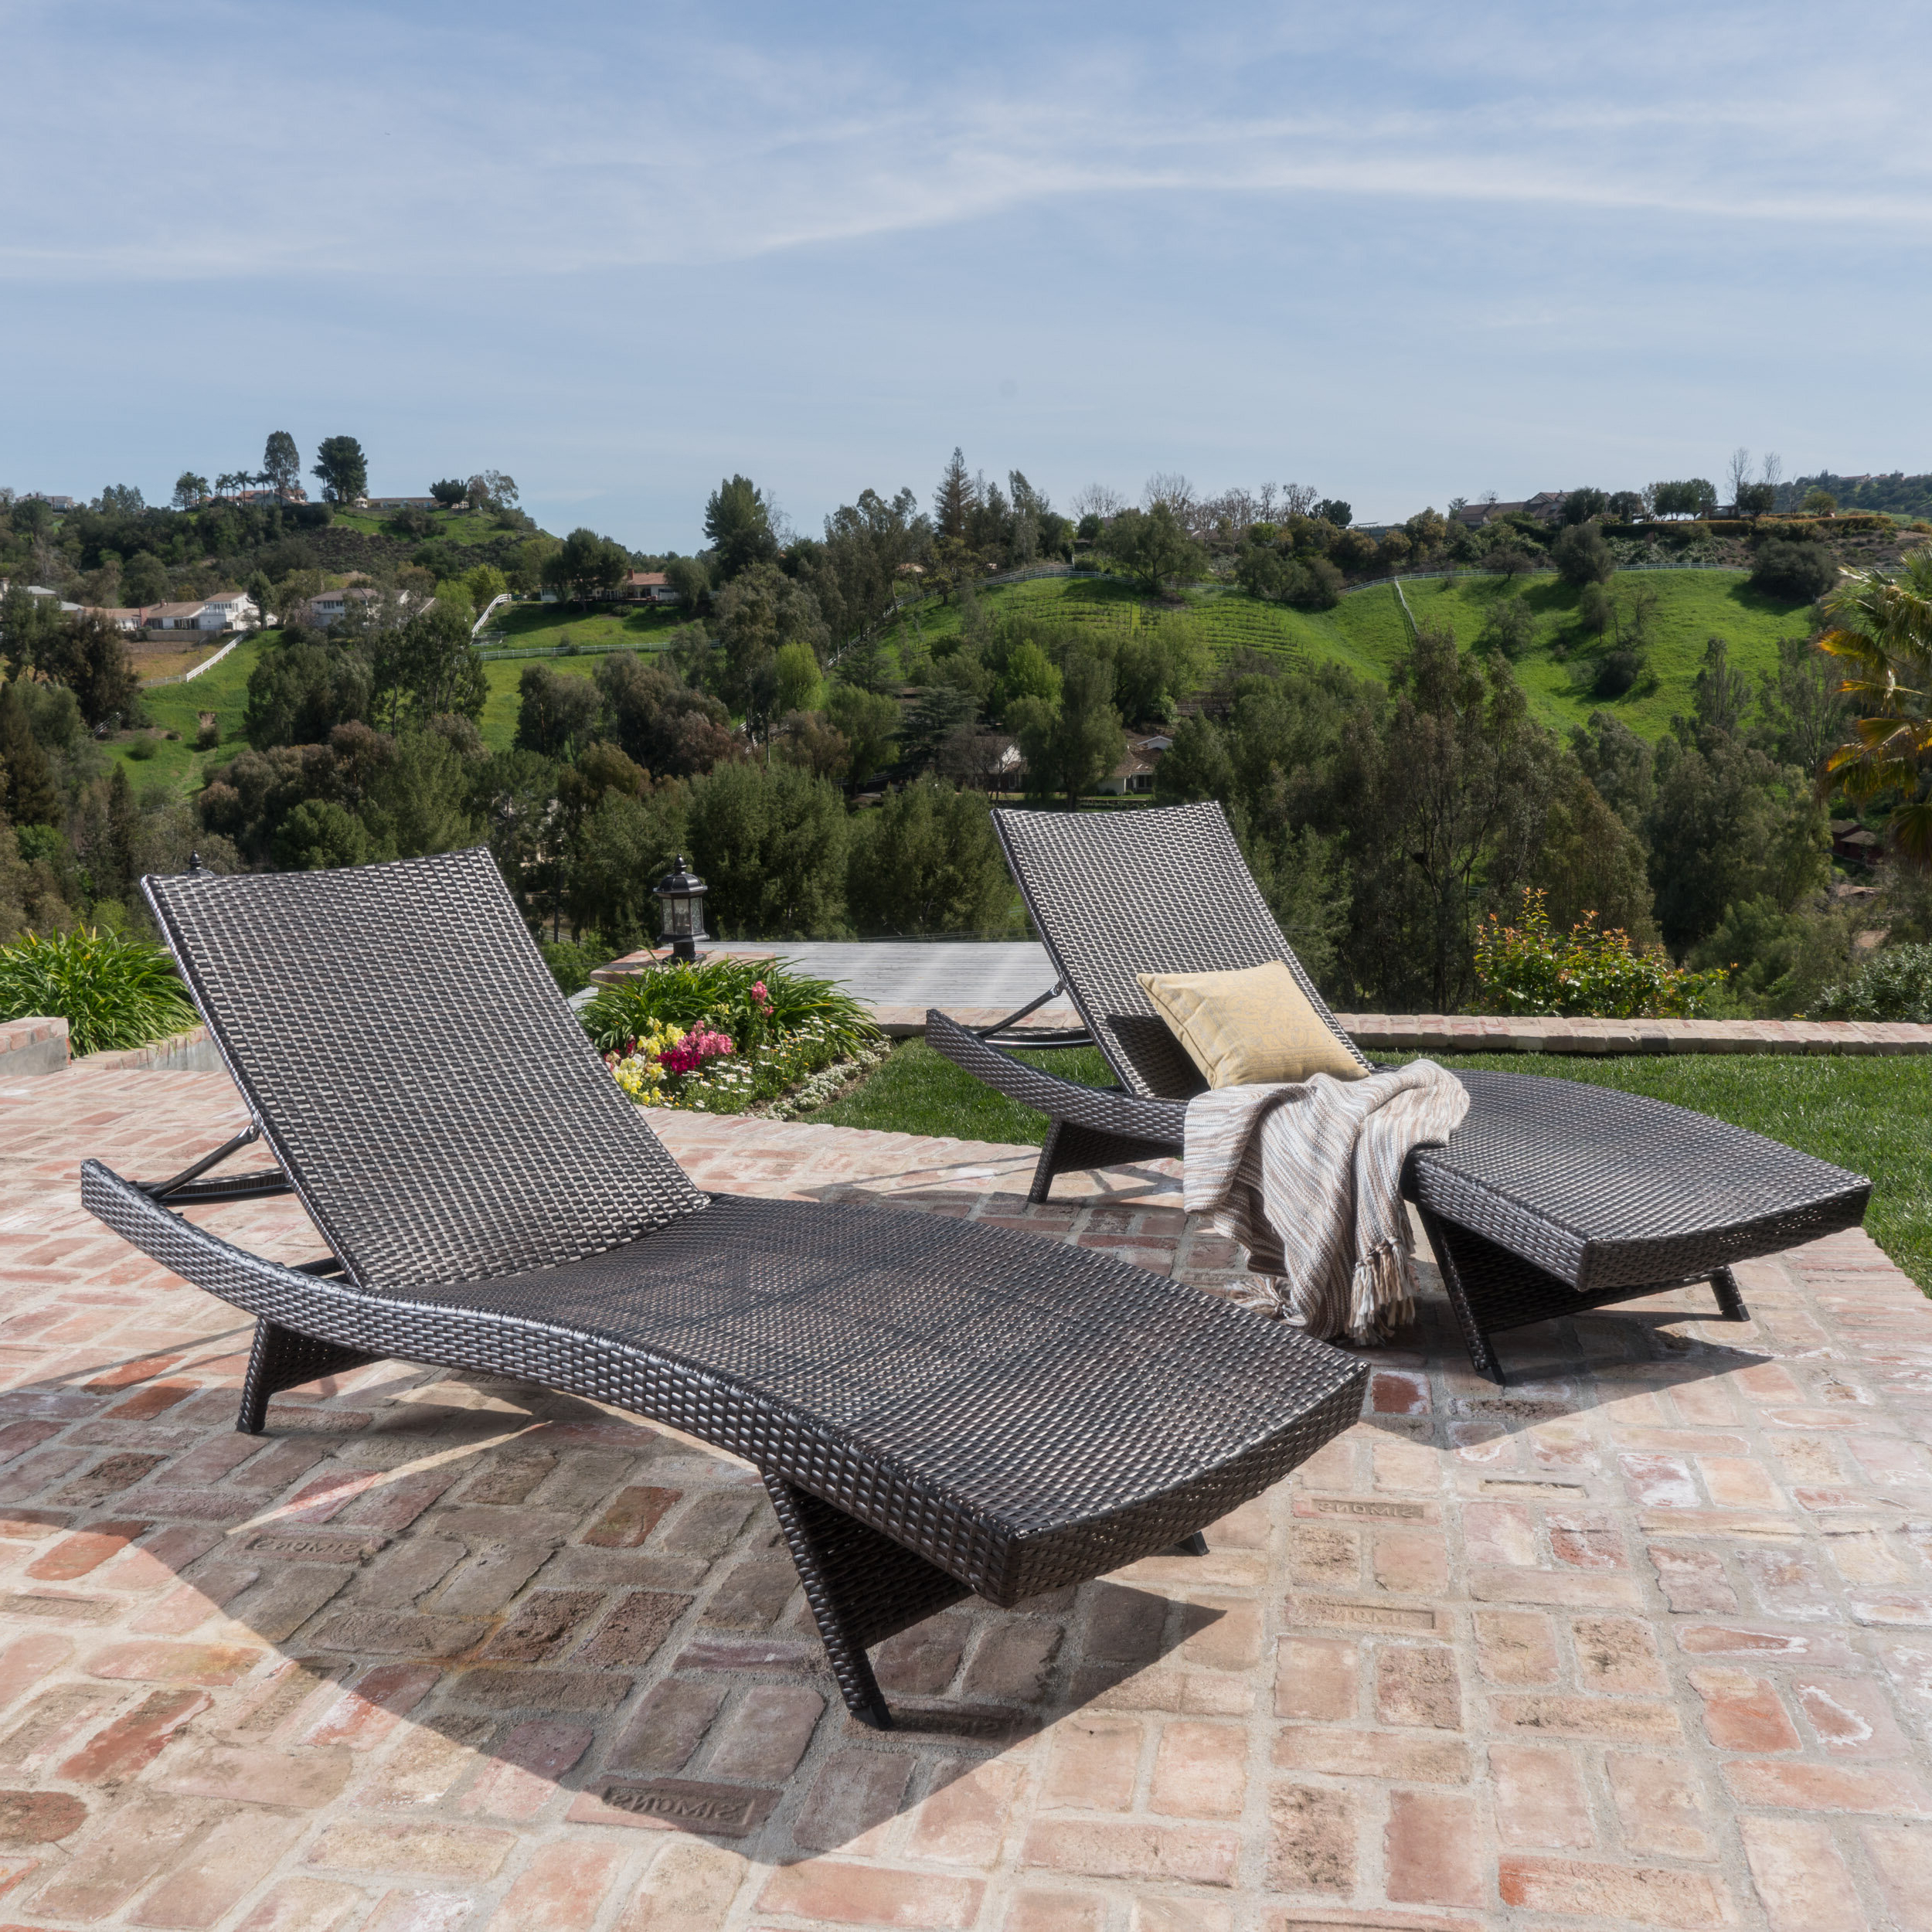 Rebello Wicker Chaise Lounge Regarding Most Current Wicker Chaise Back Adjustable Patio Lounge Chairs With Wheels (View 20 of 25)